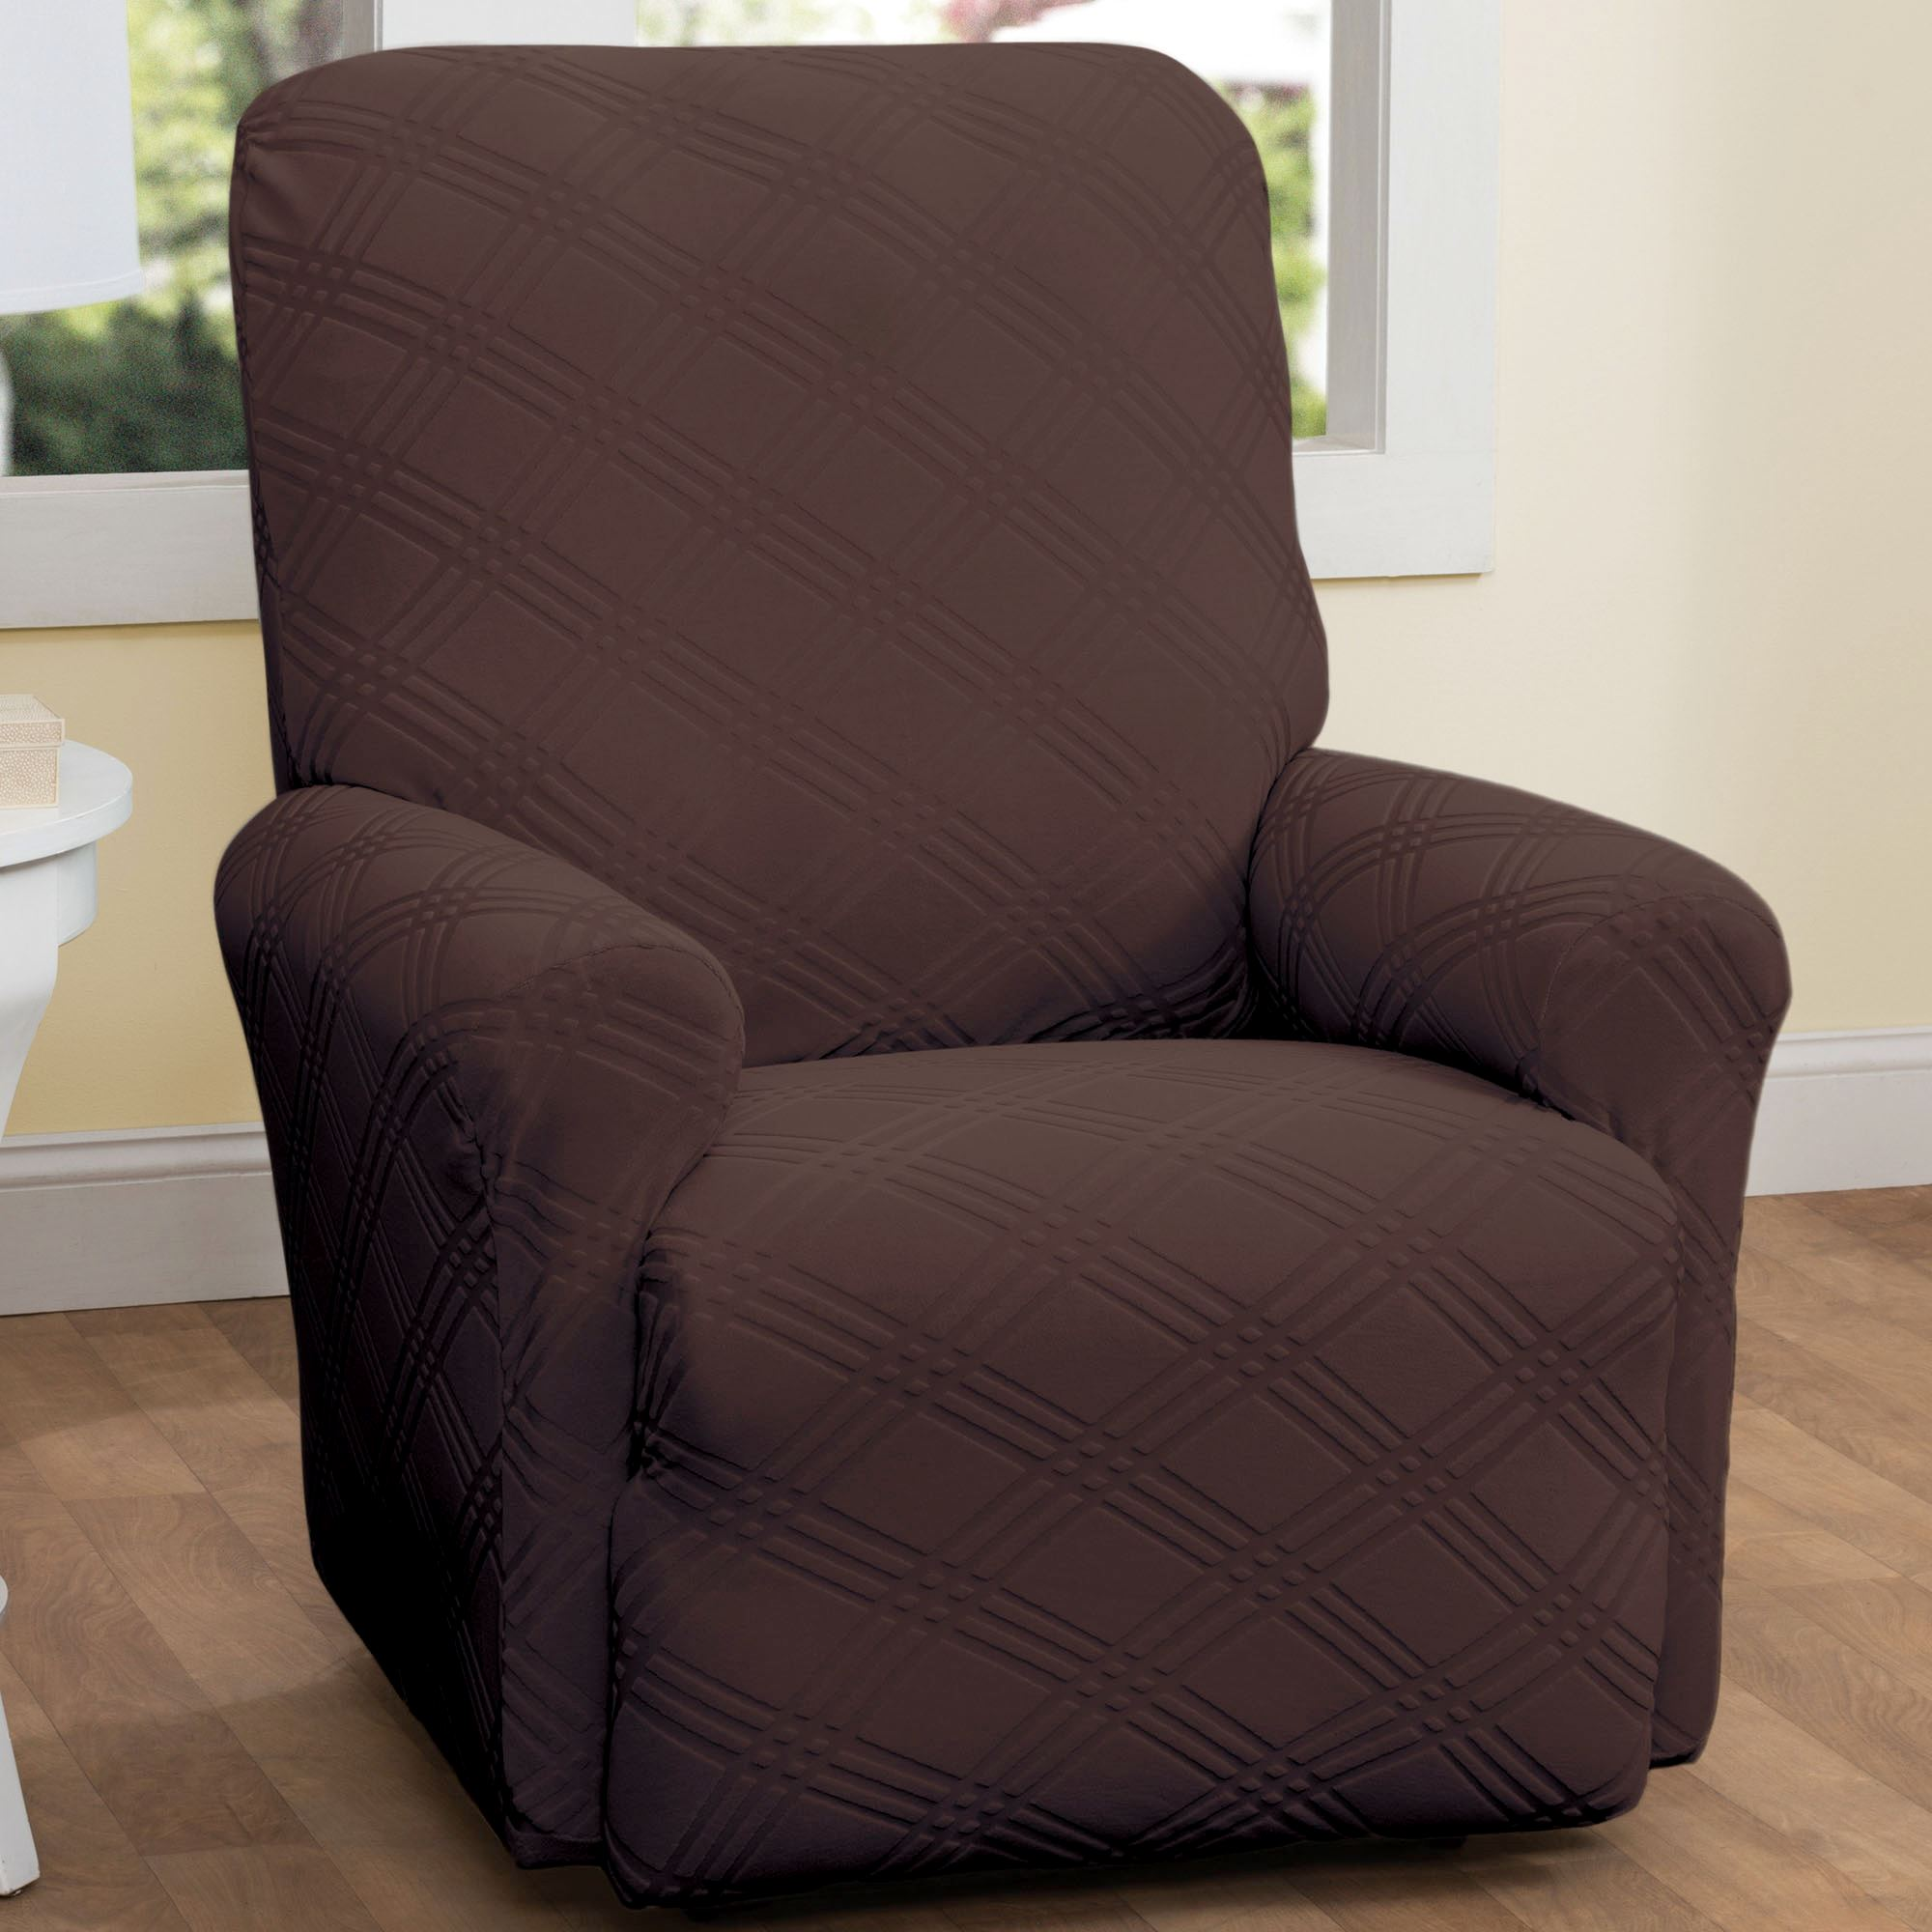 Double Diamond Stretch Recliner Slipcovers